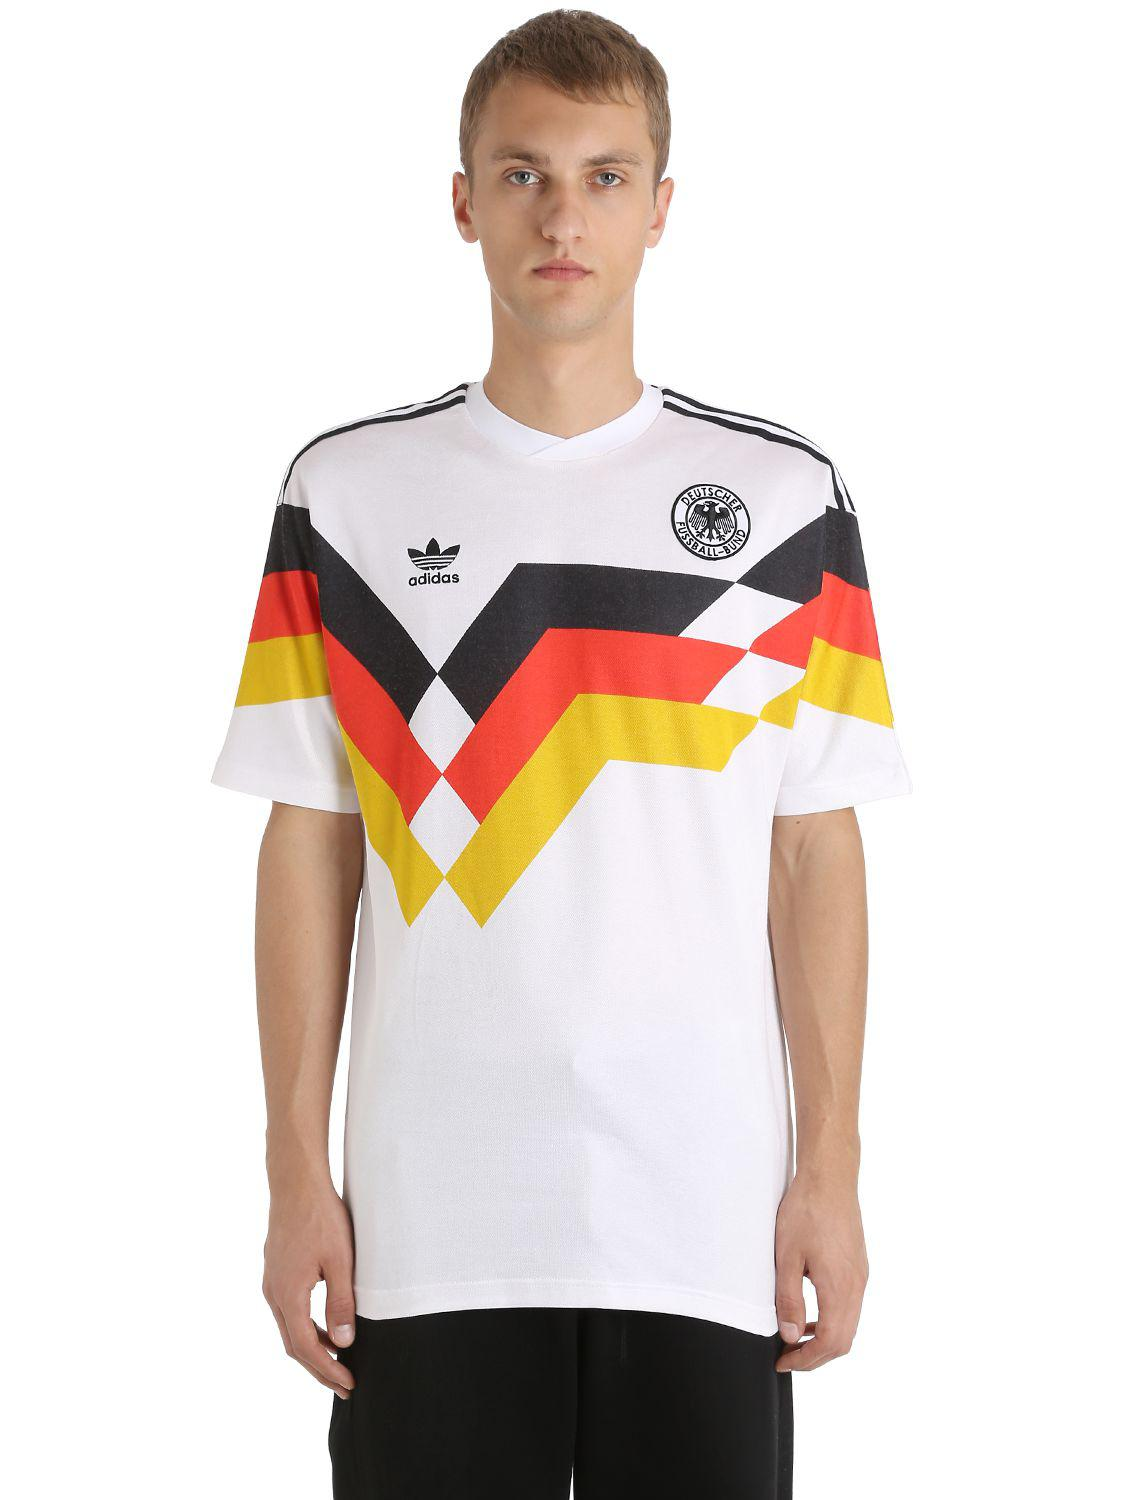 1990 For Jersey Adidas Originals White Football Germany Men xdrBoeCW